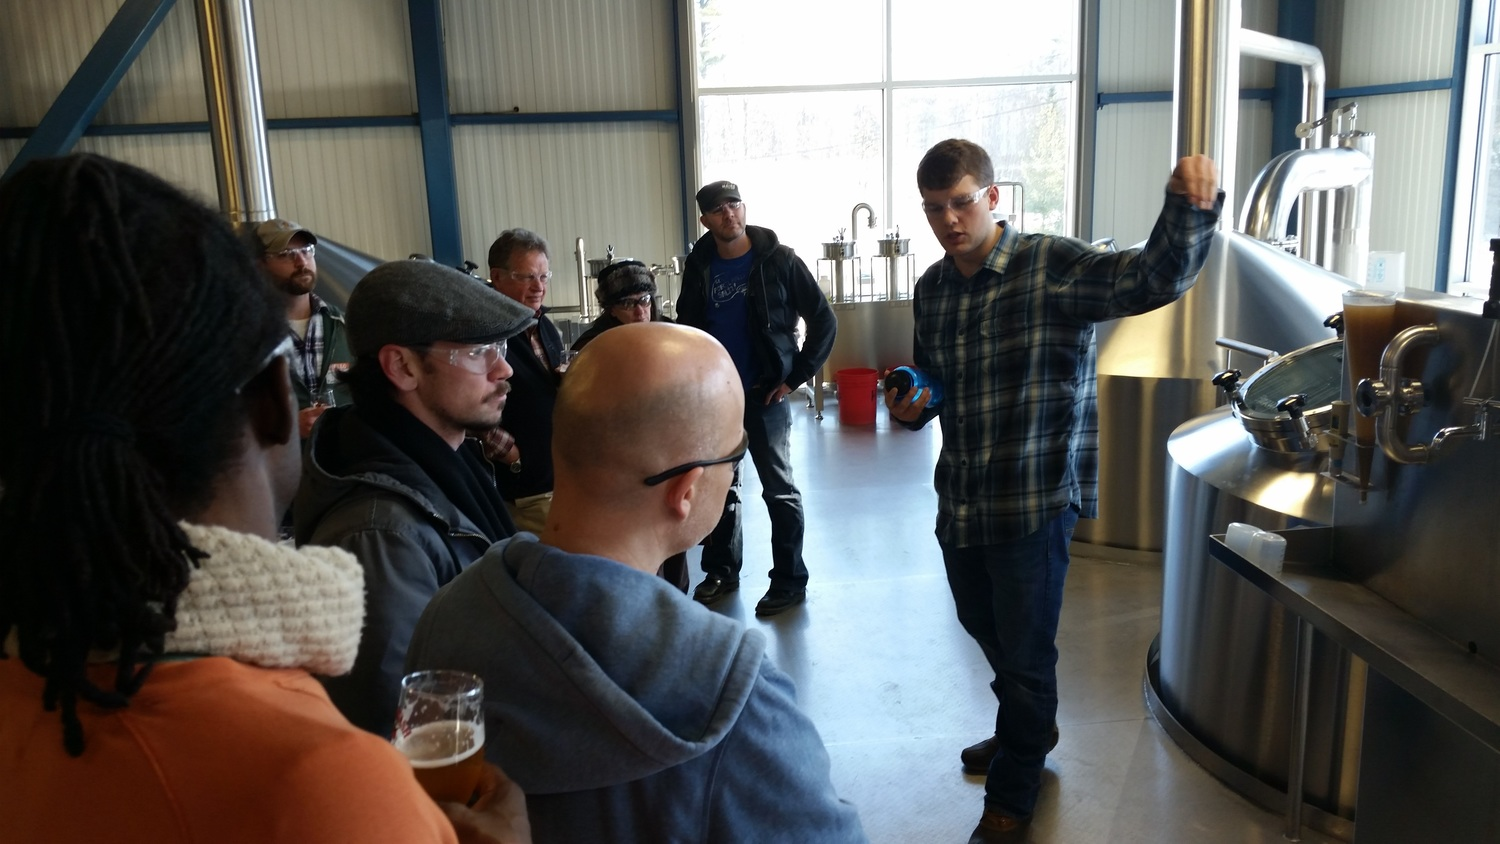 At Allagash Brewing Company, Adam took the group around on a very special VIP tour. Here is the brewhouse deck, seldom seen by outsiders during brewing operations.